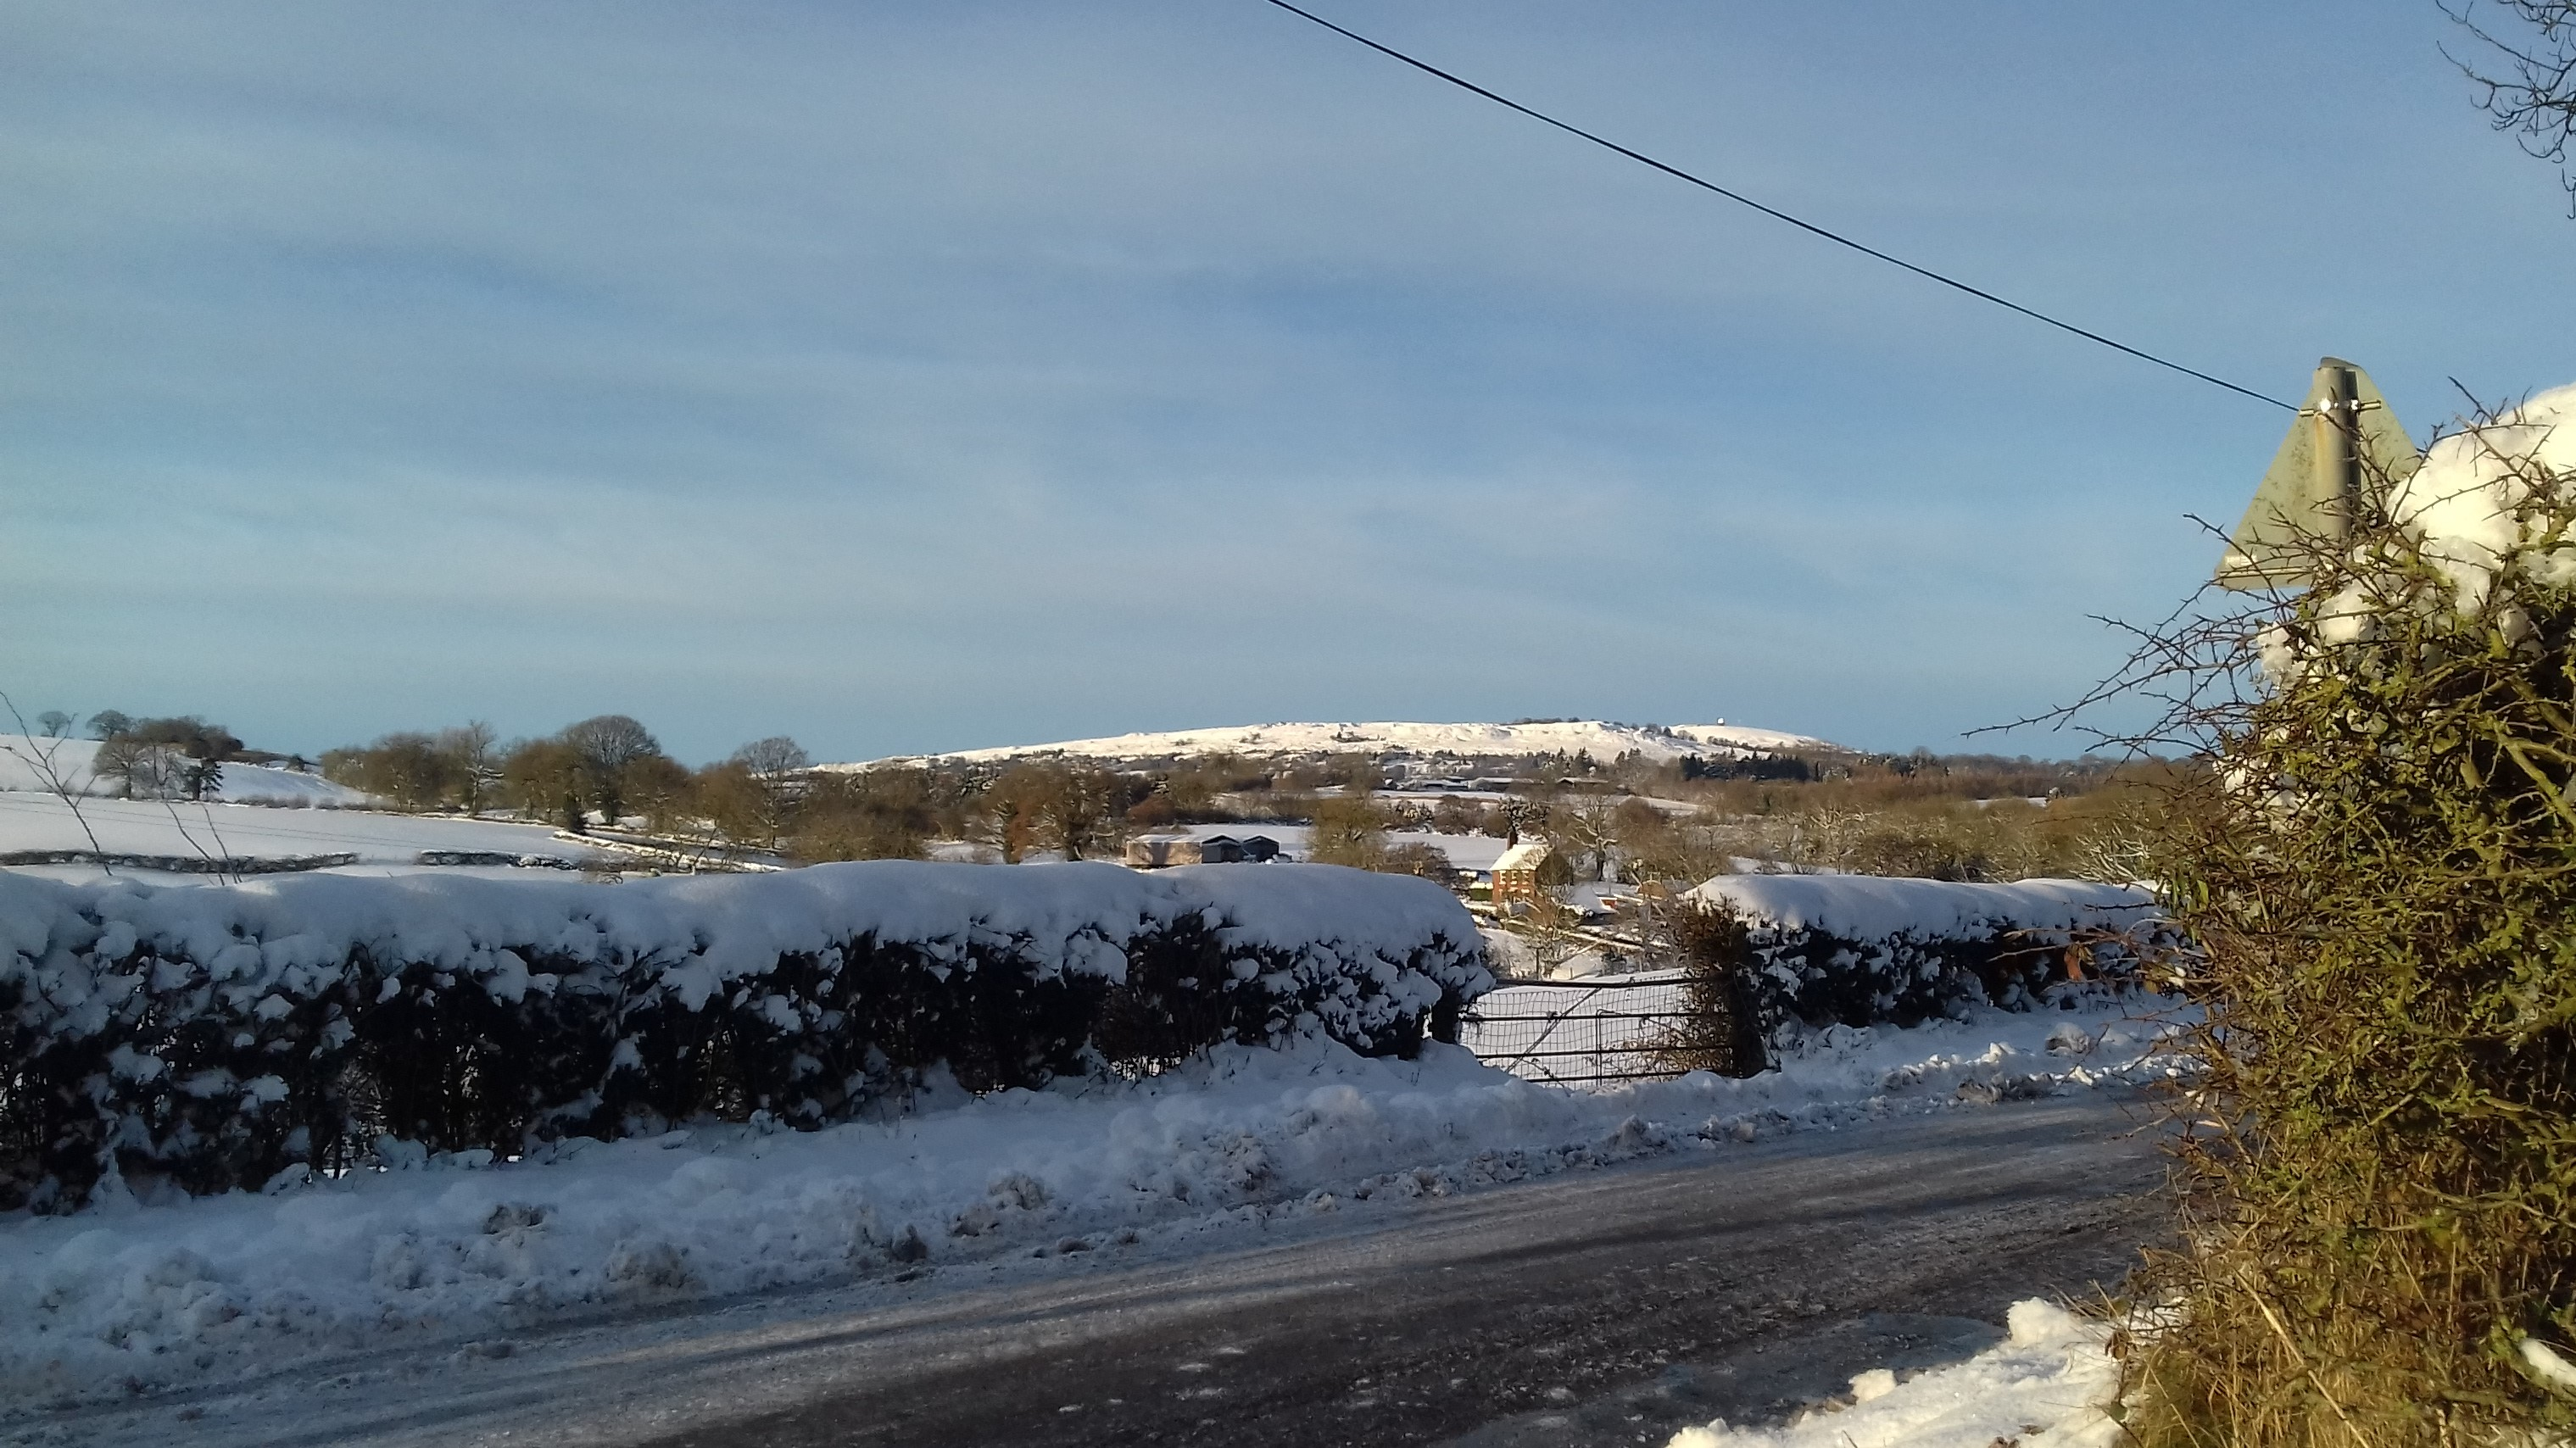 Titterstone Clee in the snow from our drive